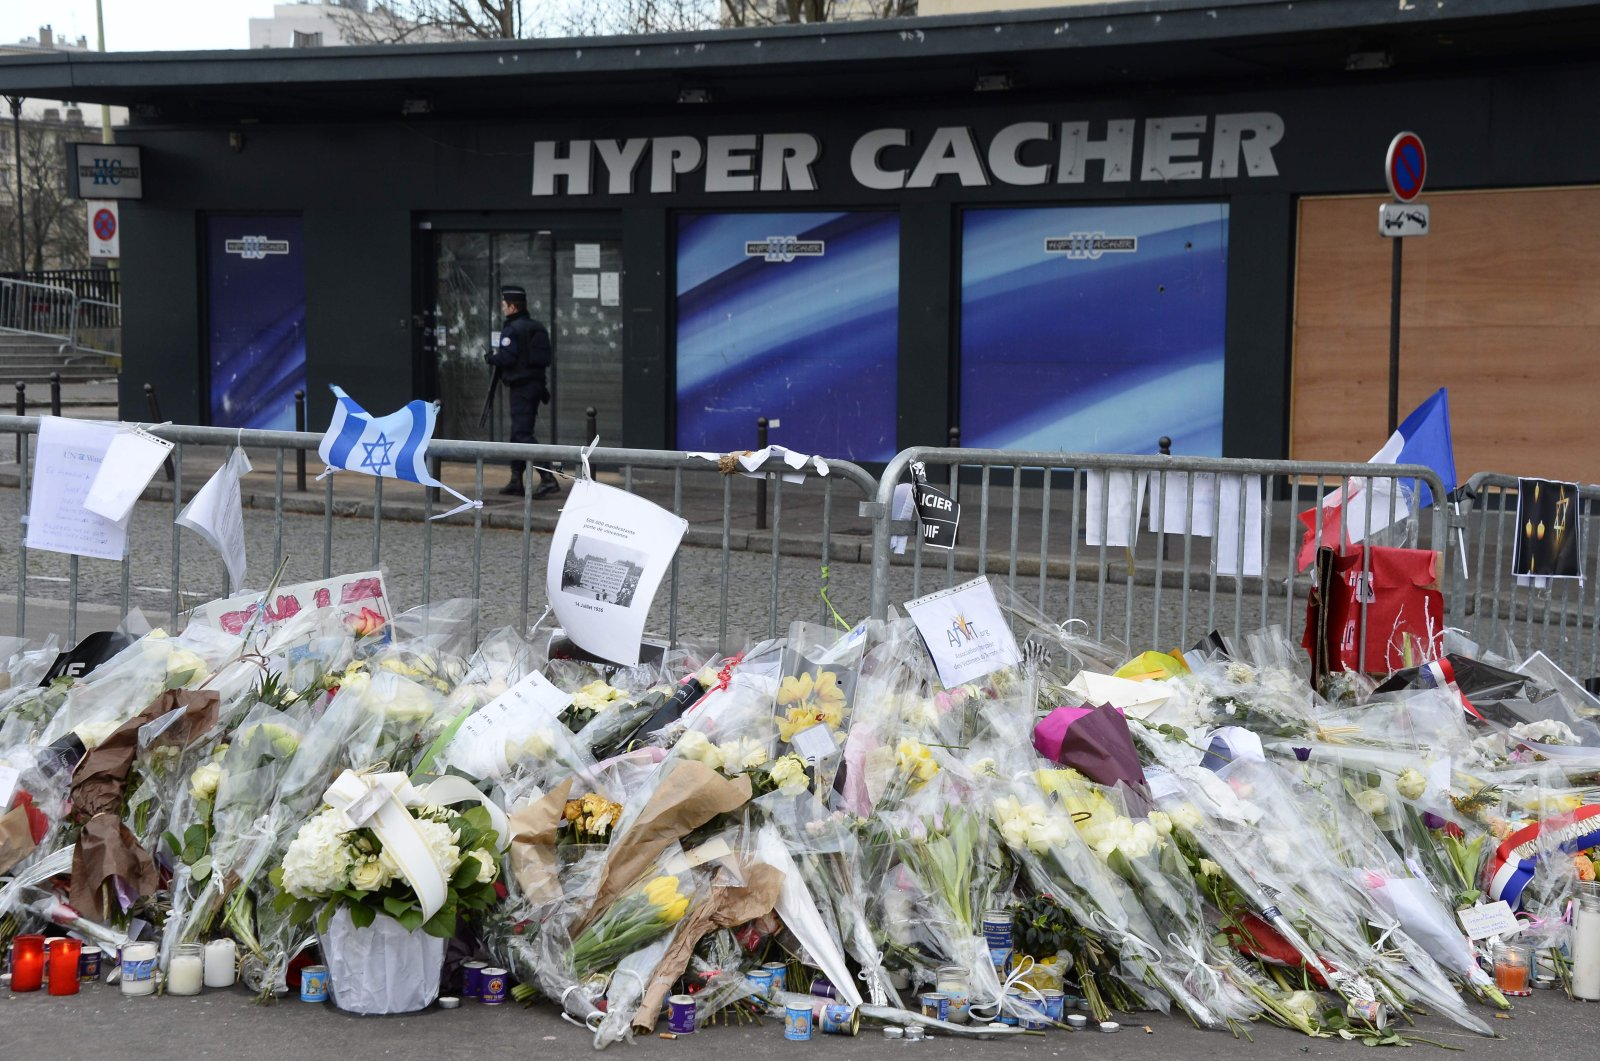 In this file photo taken on Jan. 16, 2015 shows flowers placed in tribute to the victims of the attack by Amedy Coulibaly at a supermarket in eastern Paris, France. (AFP Photo)